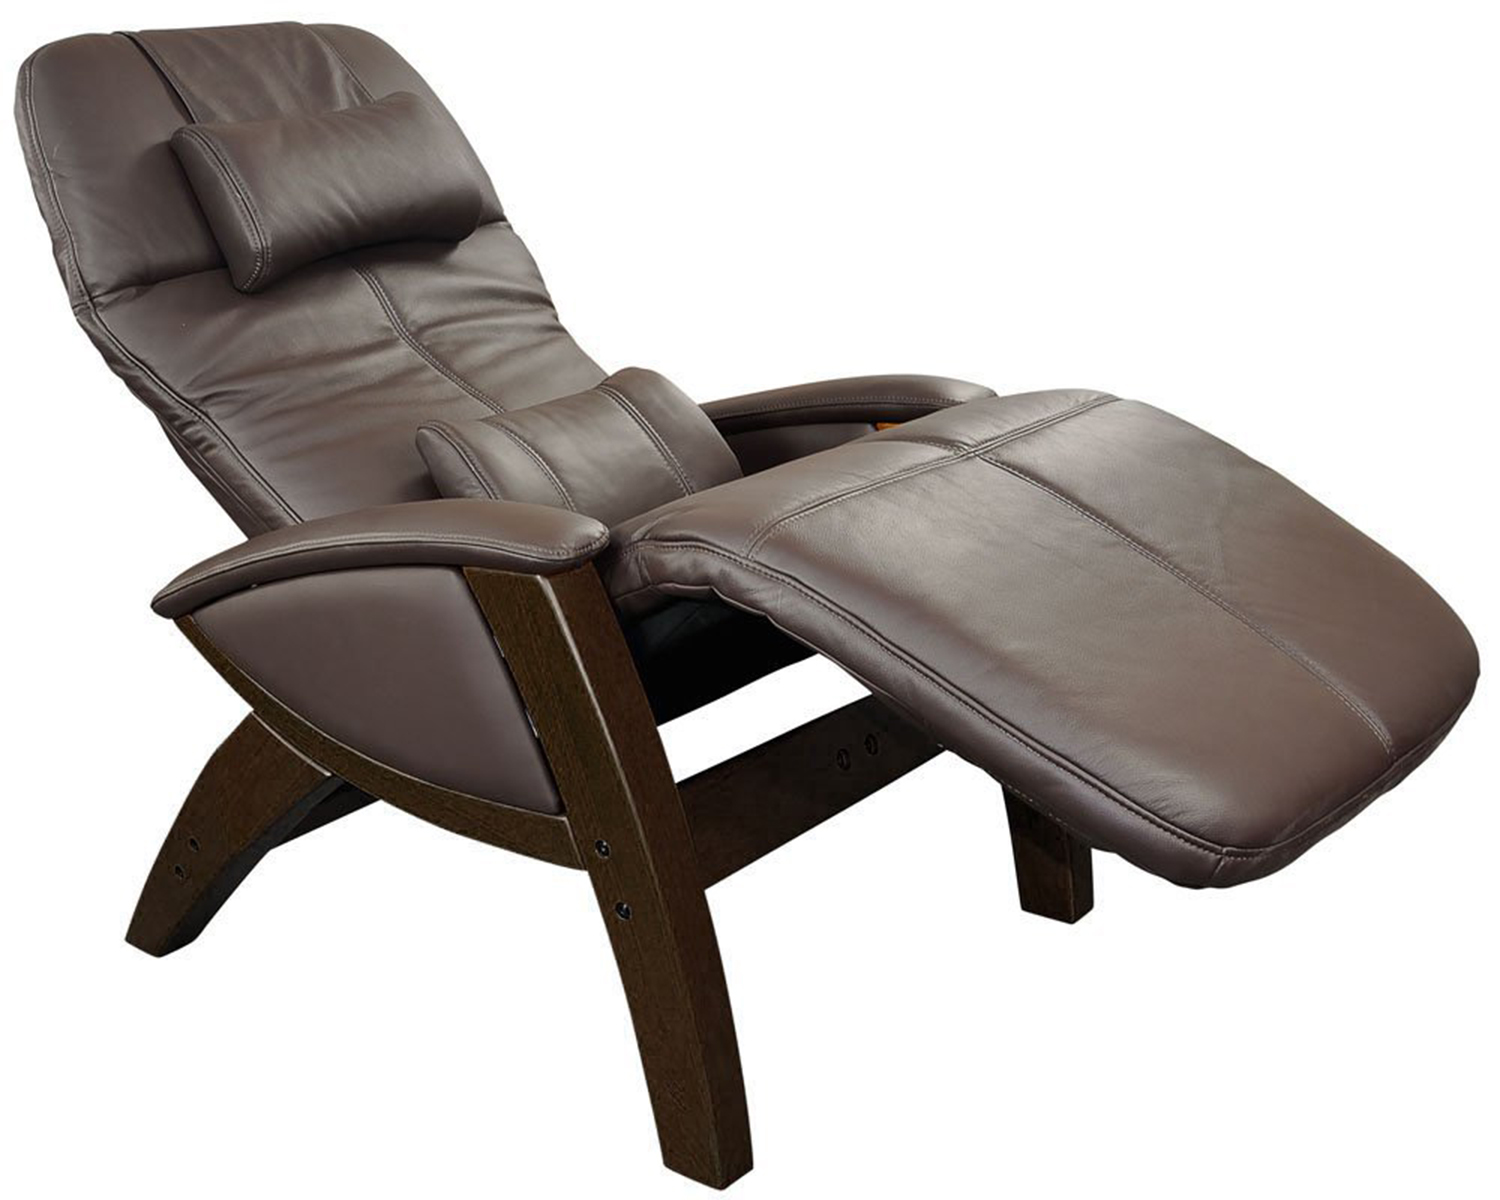 What Is A Zero Gravity Chair Svago Sv 400 Sv 405 Lusso Zero Gravity Recliner Chair